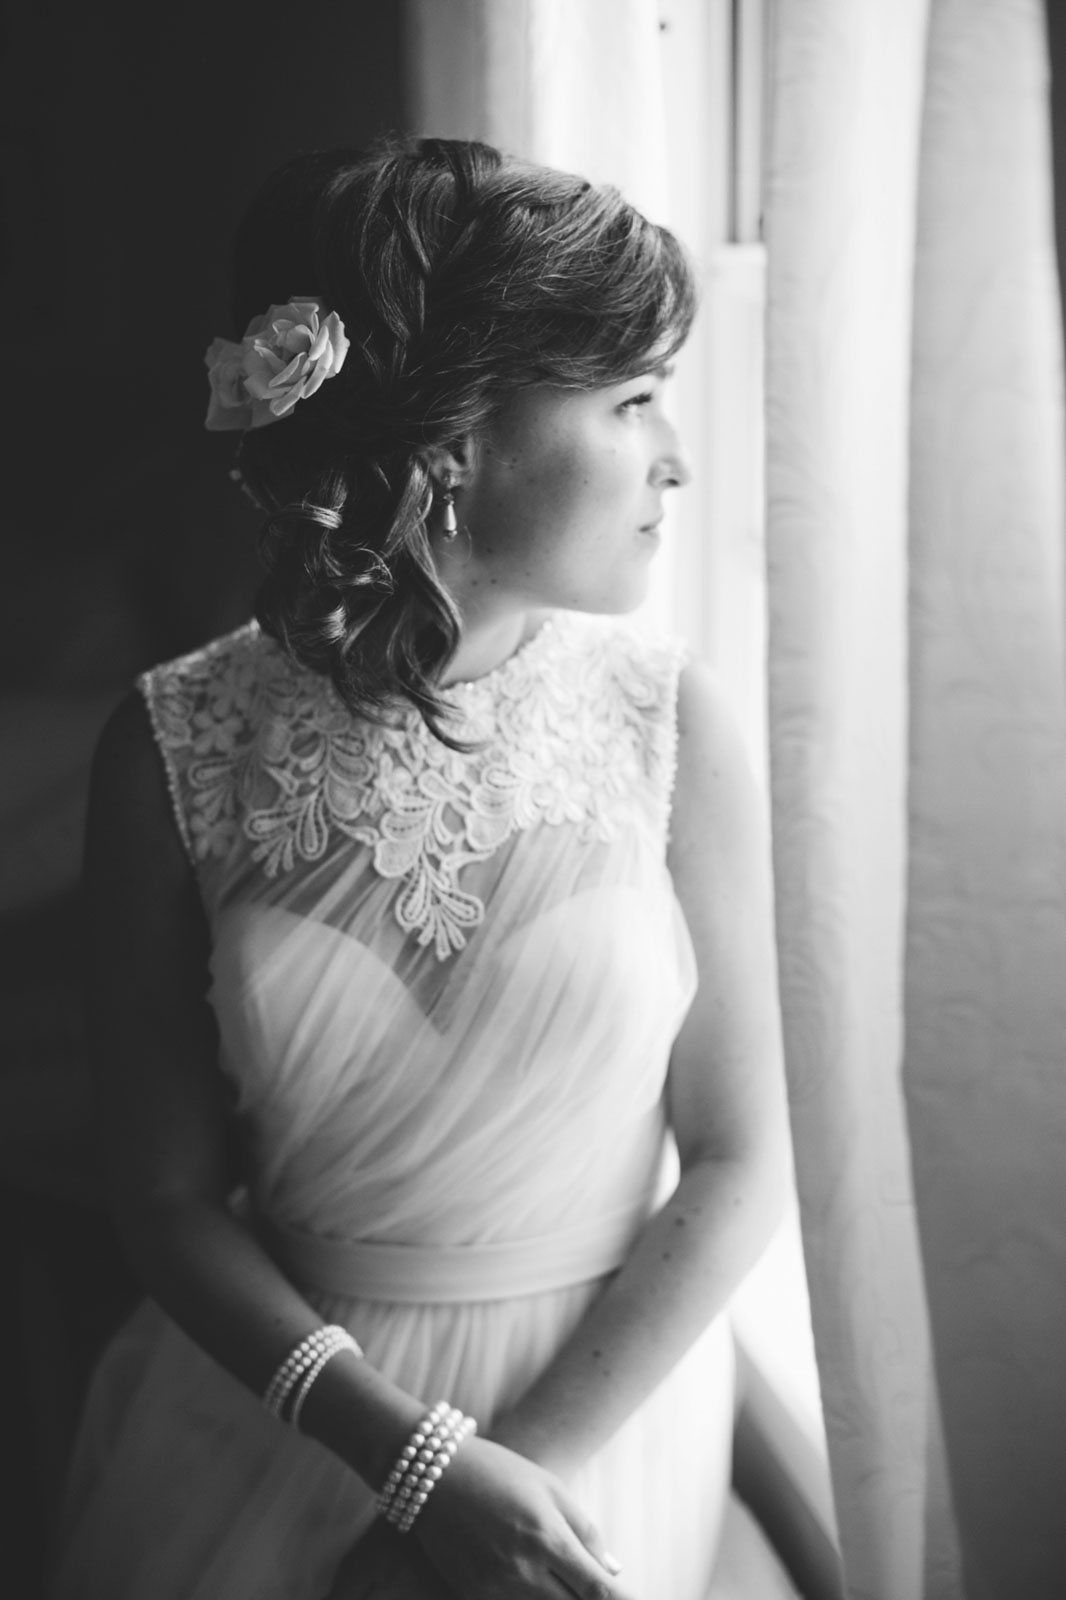 Beautiful portrait of bride looking out the window, natural window light, black and white